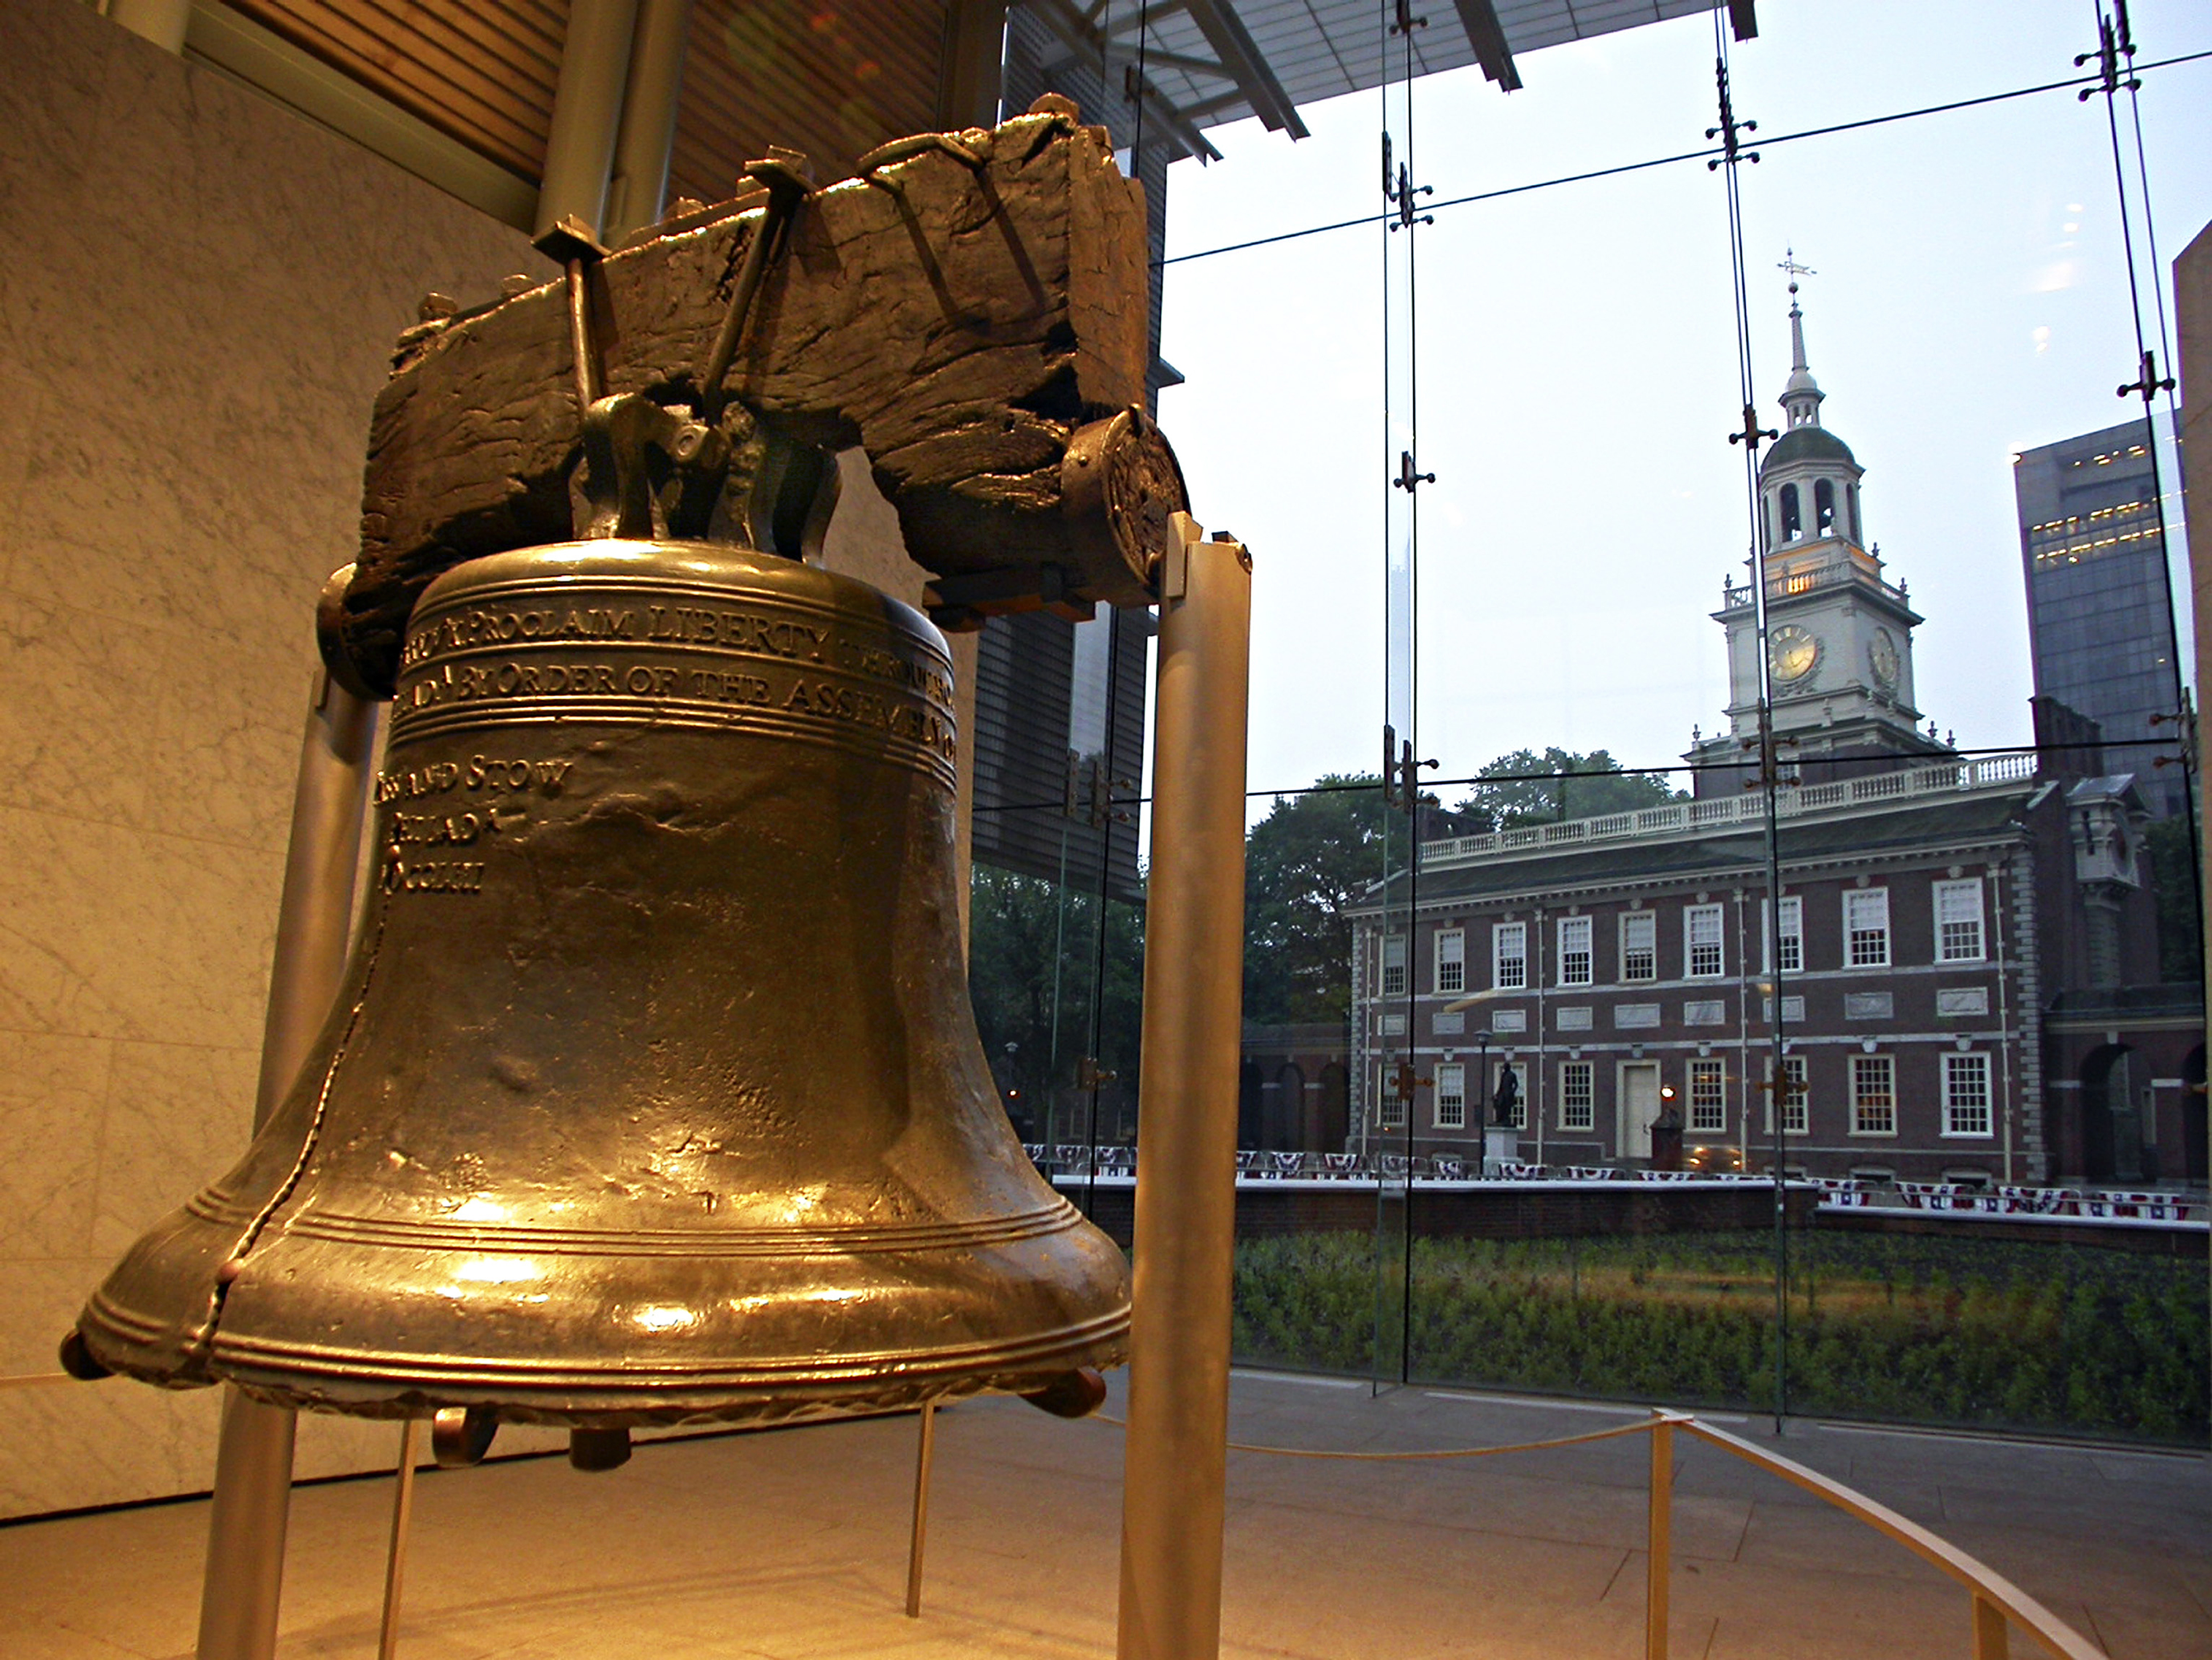 Ben Carson: What You Don't Know About The Liberty Bell | Time